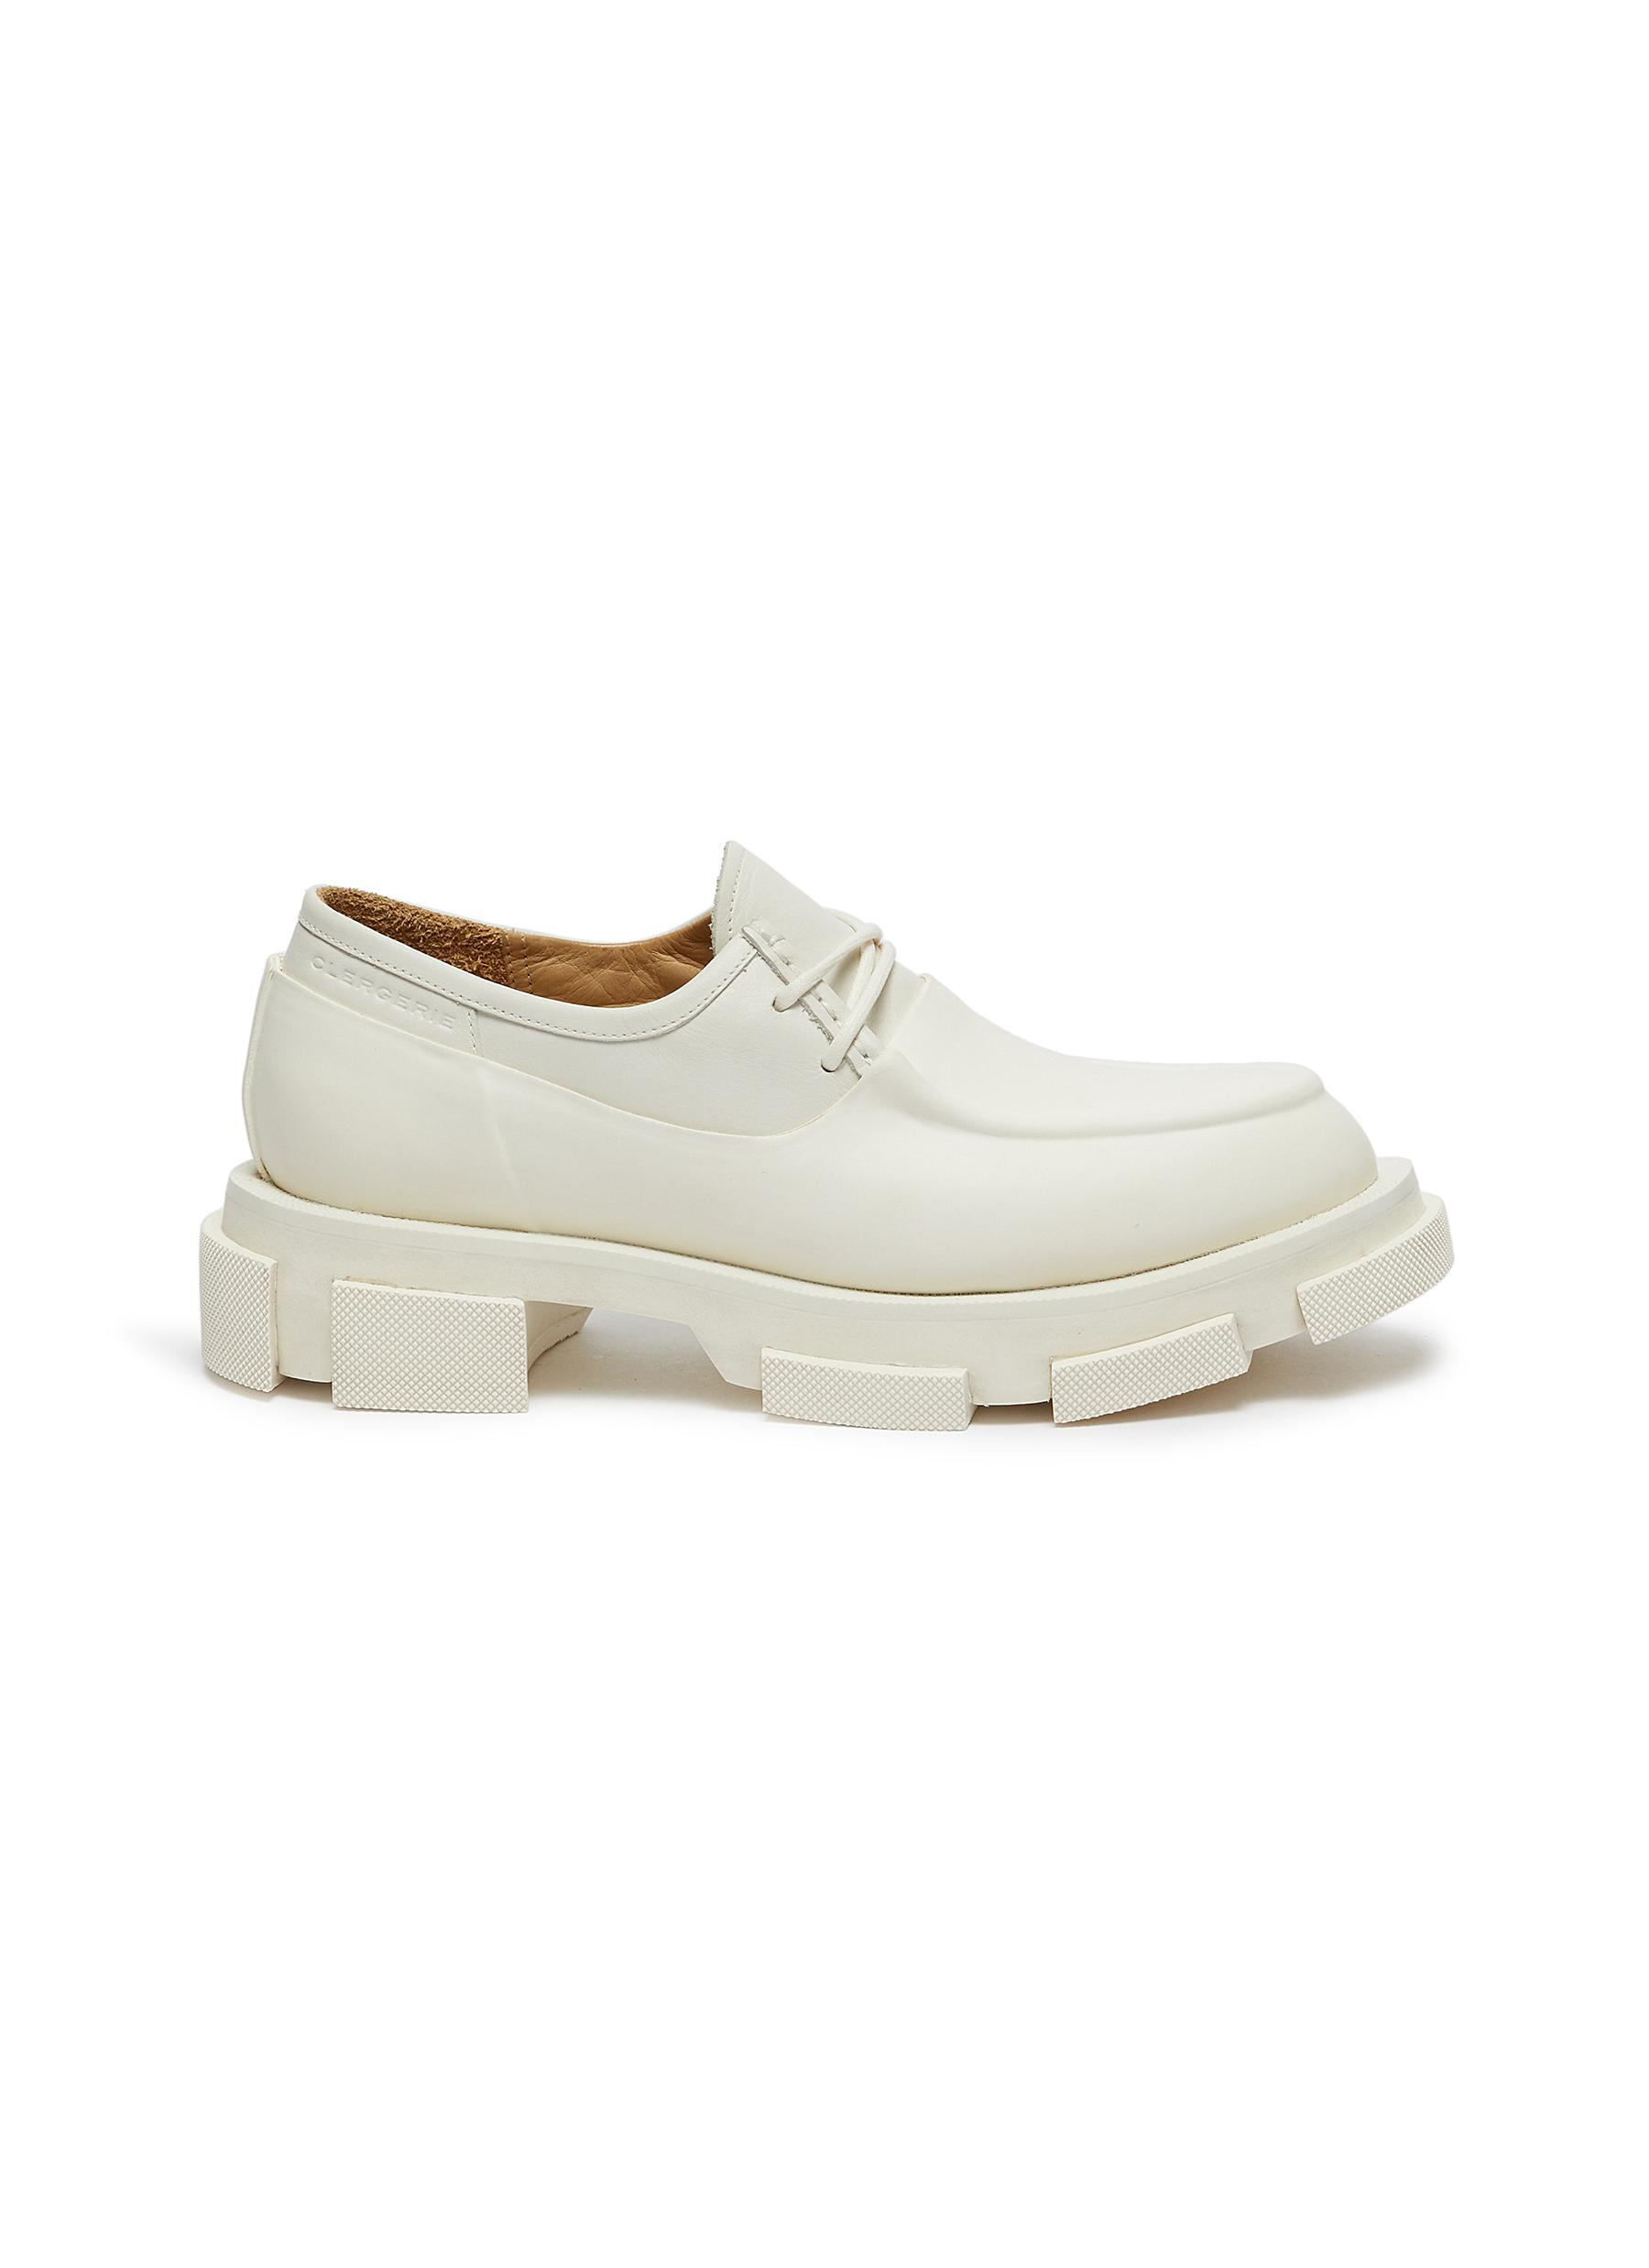 x both Bigup rubber panel leather platform loafers by Clergerie